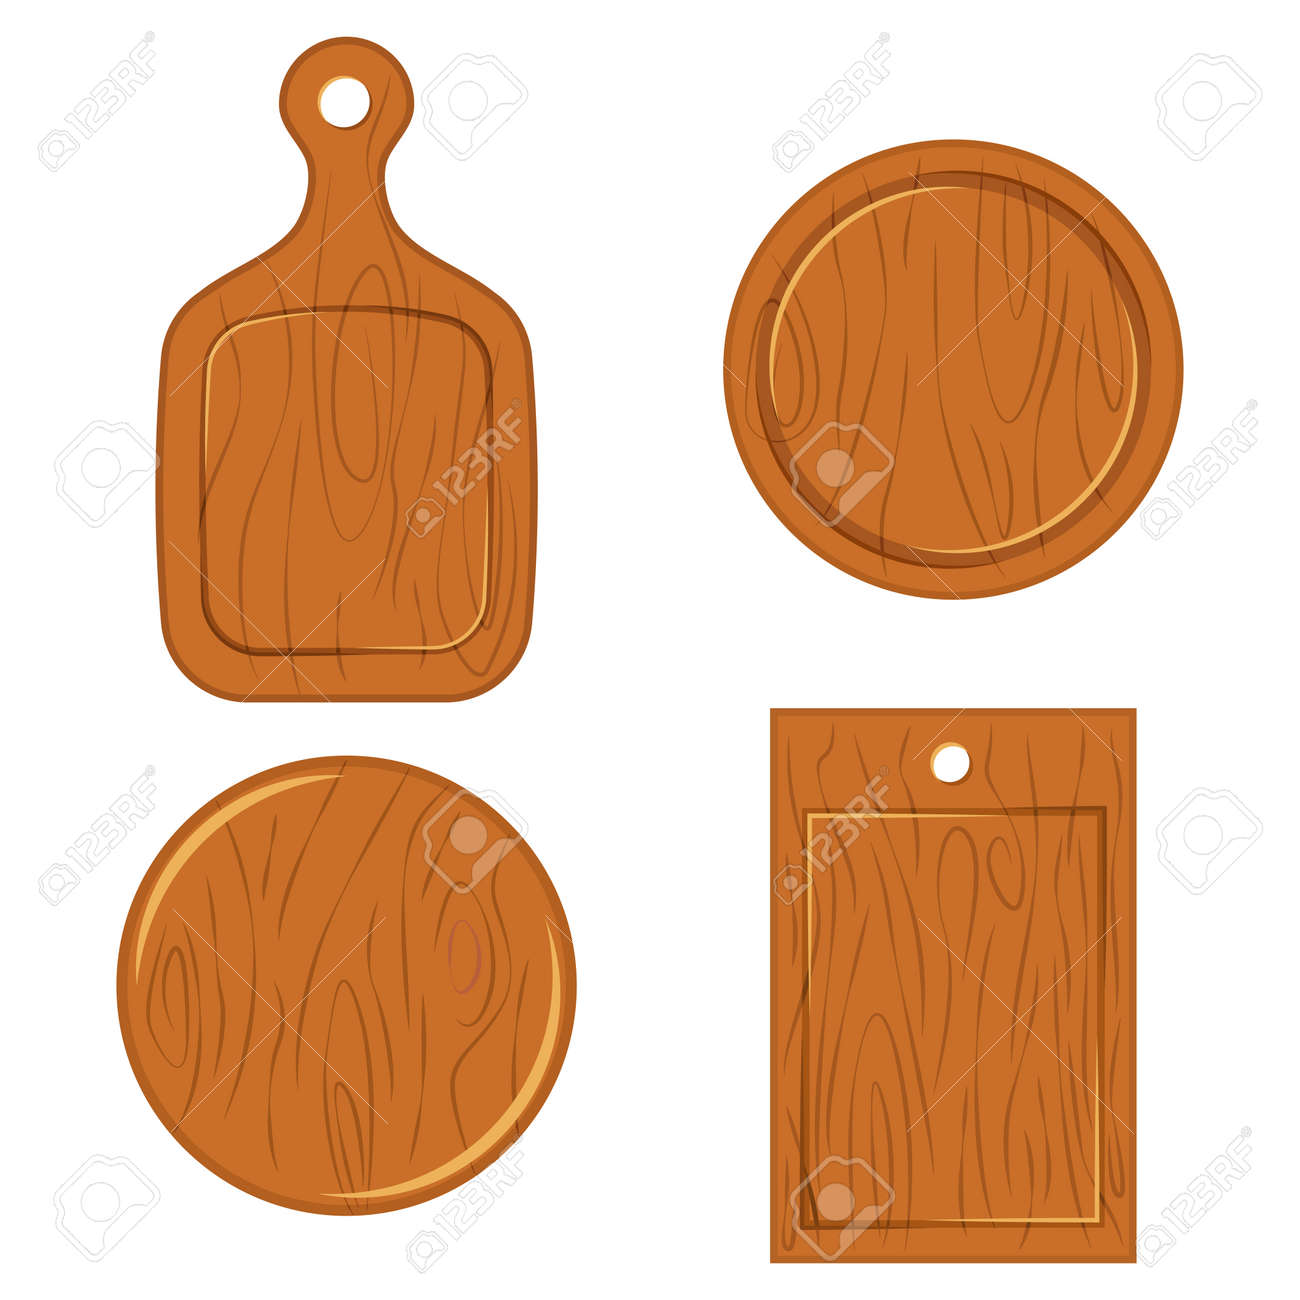 Wooden Cutting Board Of Different Shapes Top View Vector Flat Royalty Free Cliparts Vectors And Stock Illustration Image 118630028